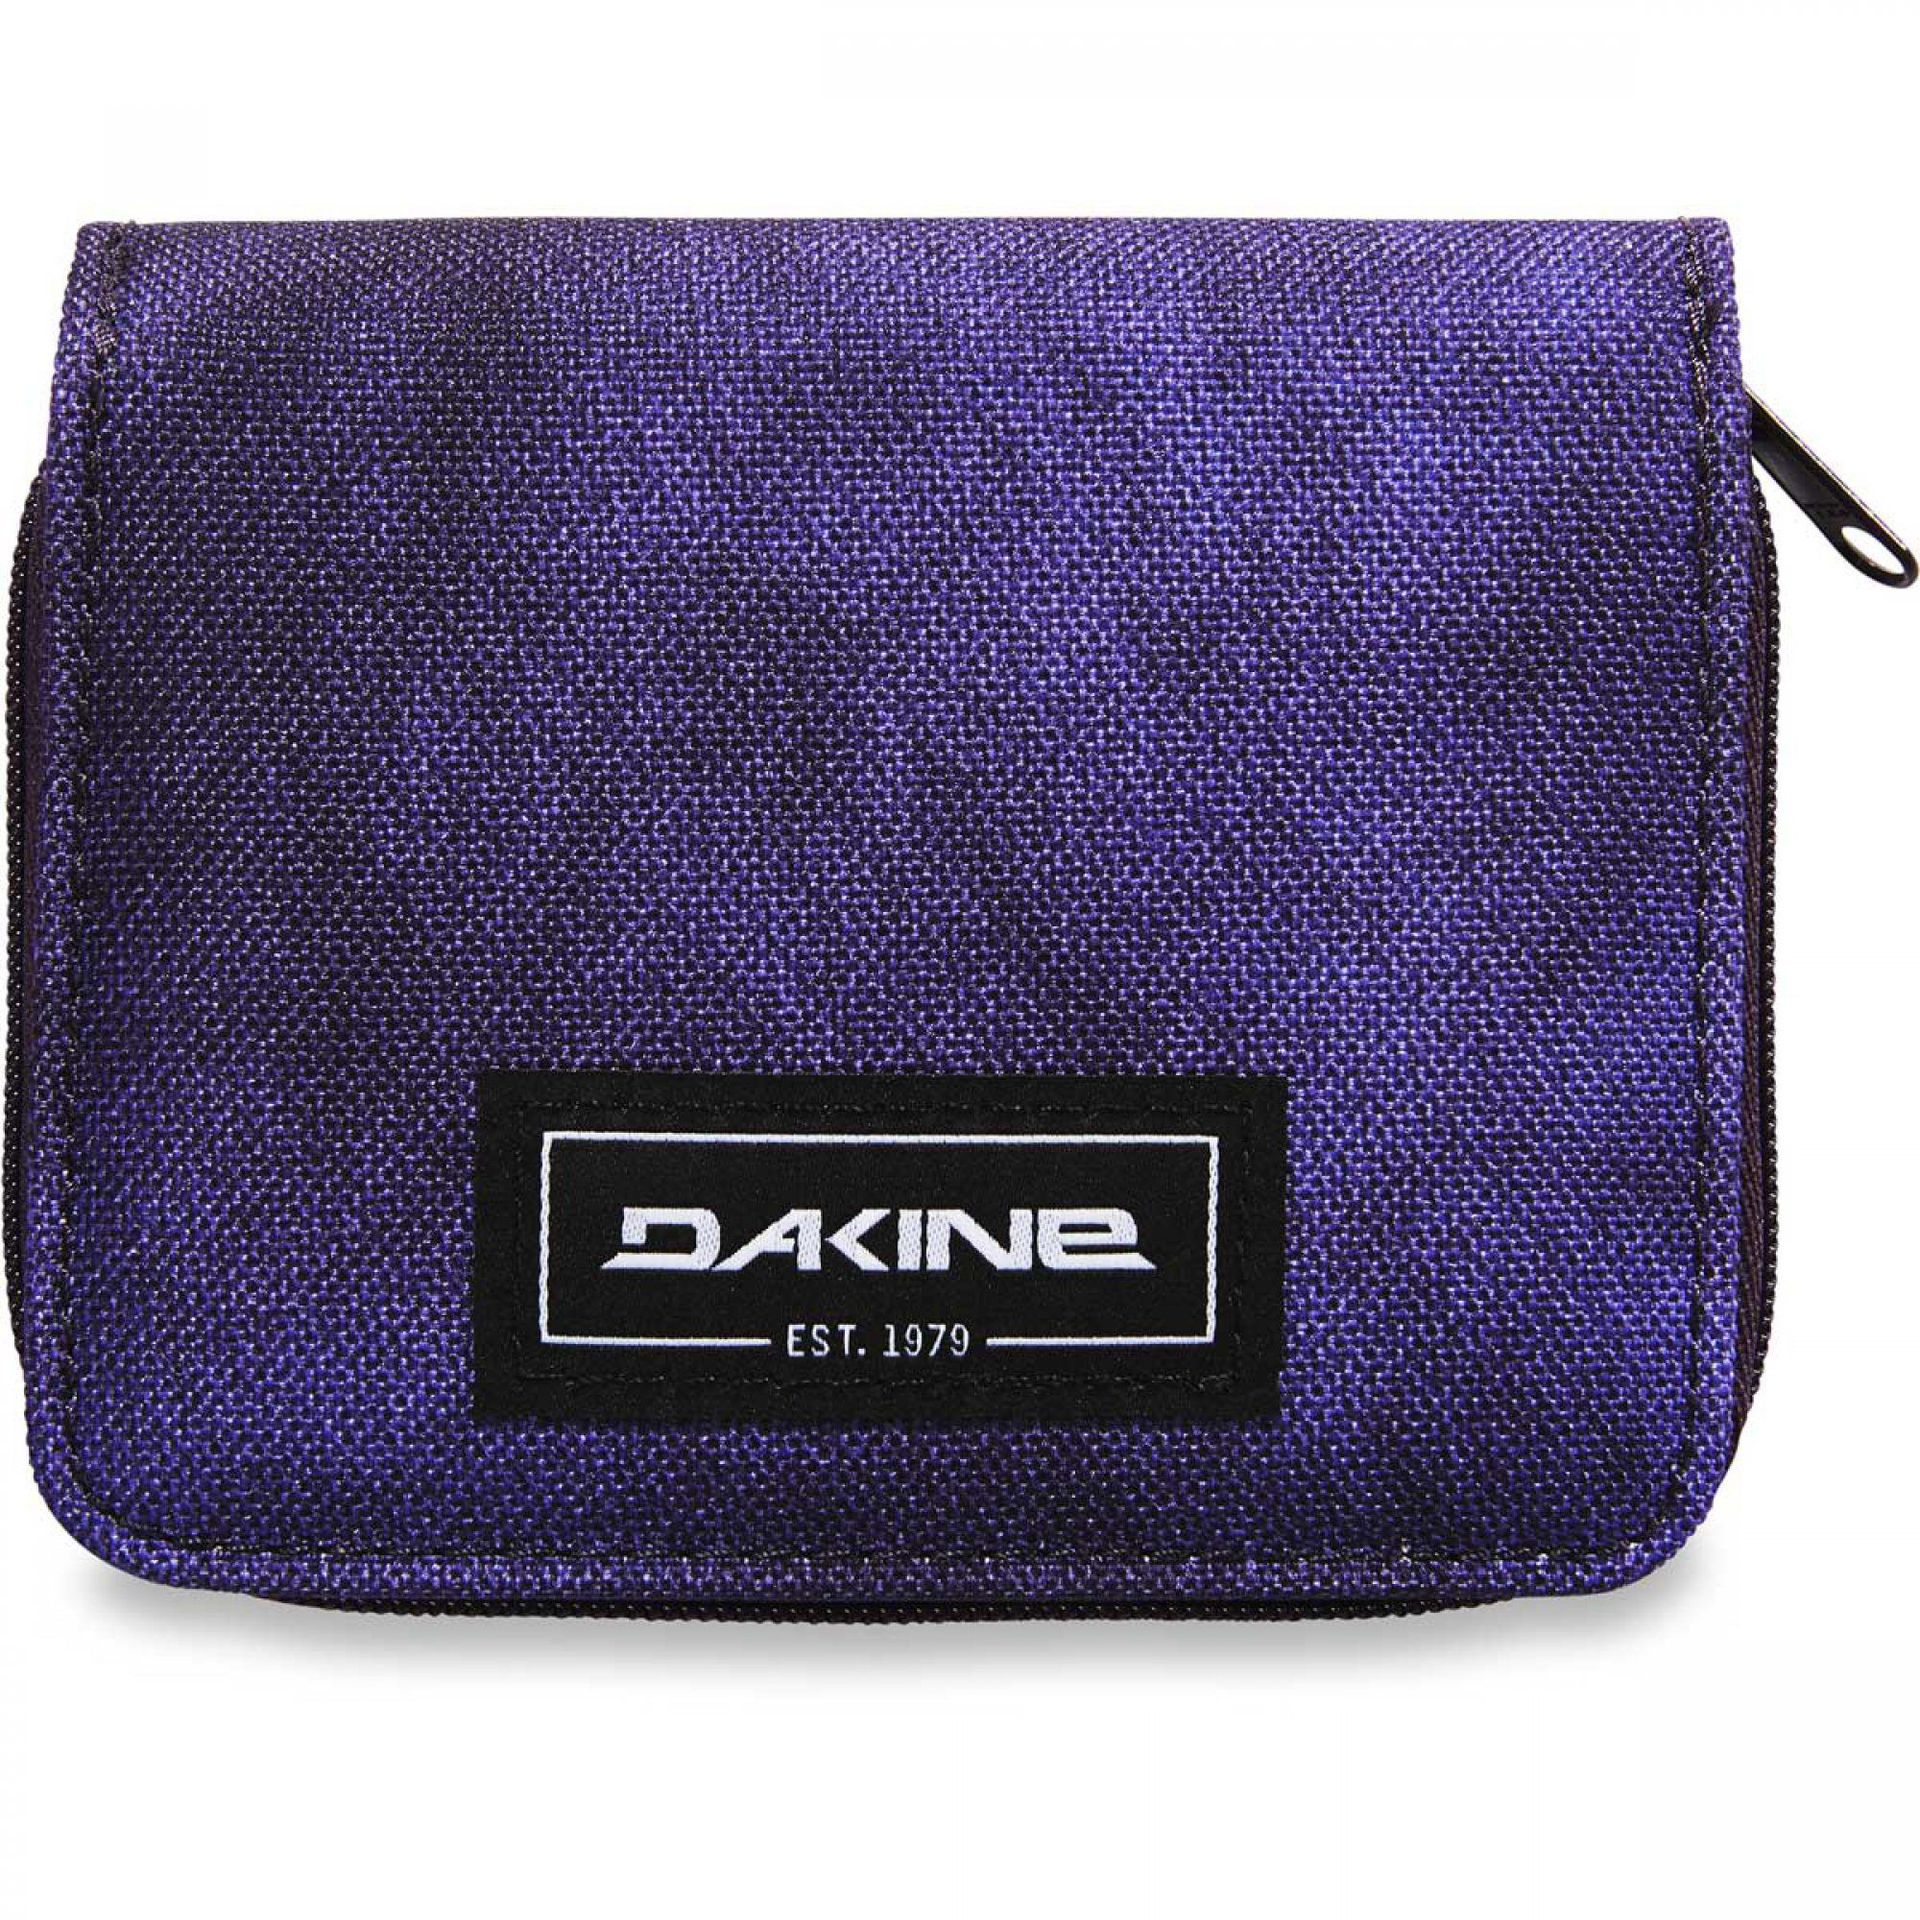 PORTFEL DAKINE SOHO PURPLE HAZE